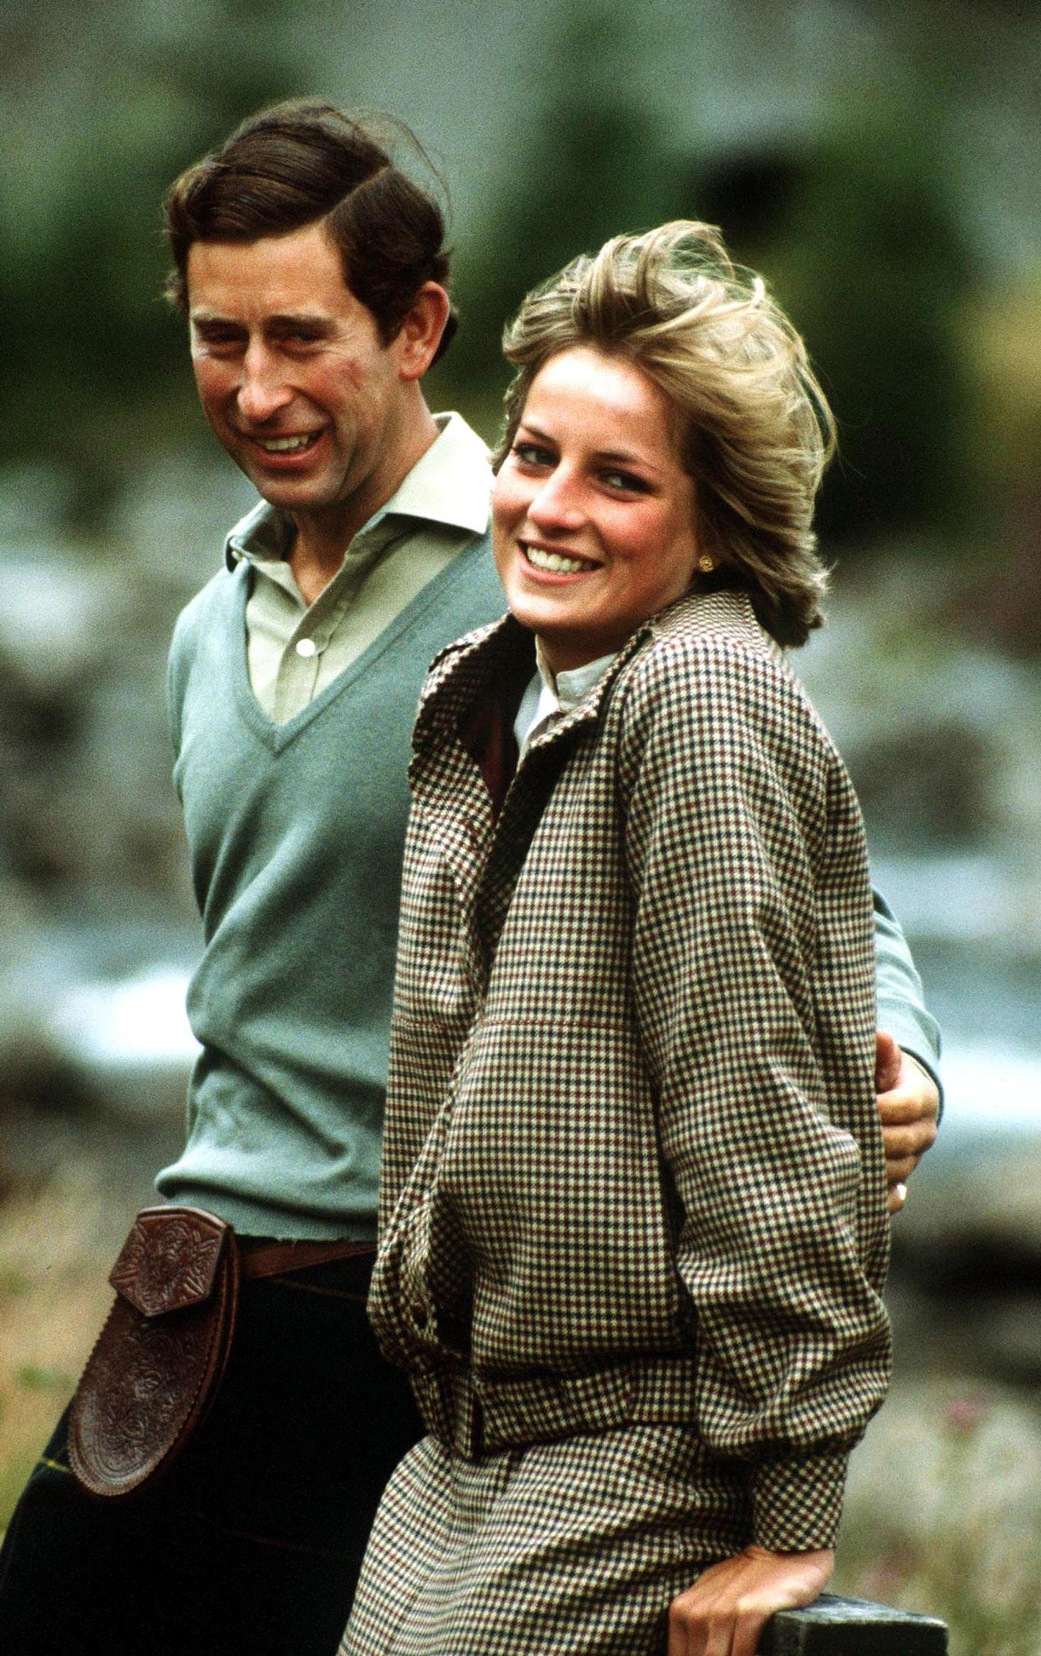 THE PRINCE AND PRINCESS OF WALES SEEN BY THE BANKS OF THE ROVER DEE AT BALMORAL DURING THEIR SCOTTISH HONEYMOON. DIANA WEARS A BILL PASHLEY SUIT. PHOTO BY JAYNE FINCHER. SEPTEMBER 1981.